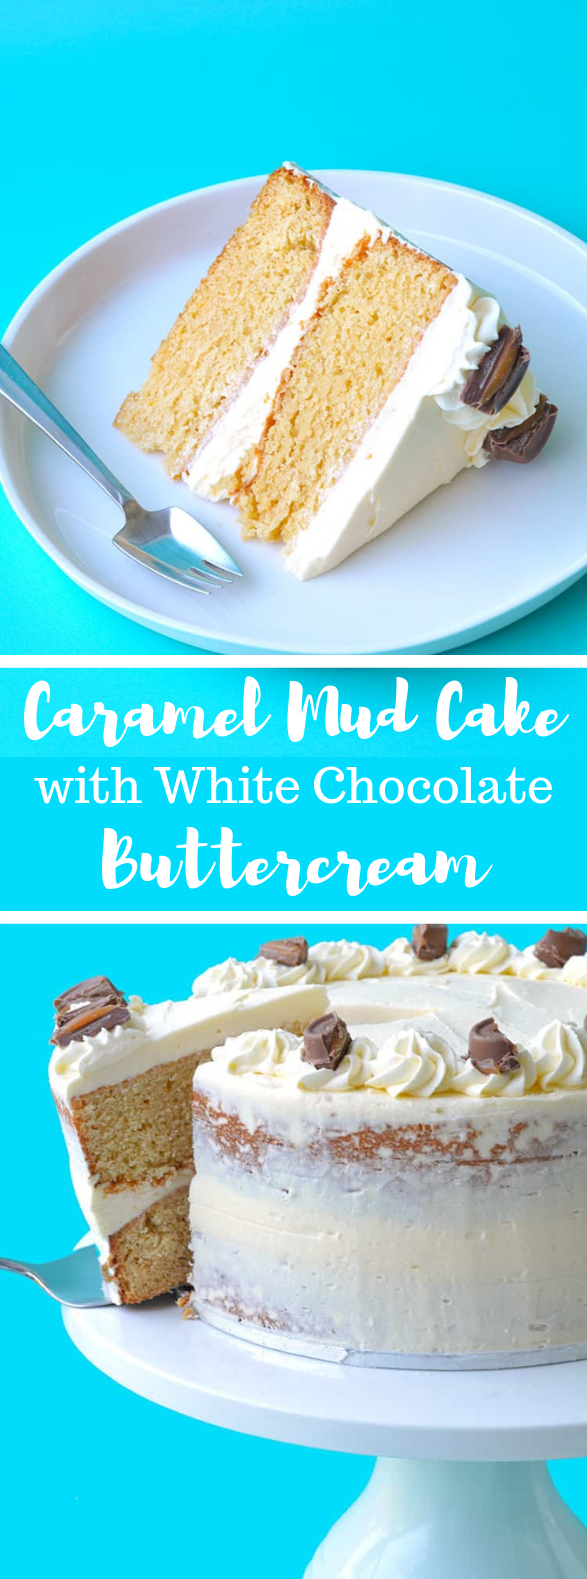 CARAMEL MUD CAKE WITH WHITE CHOCOLATE BUTTERCREAM